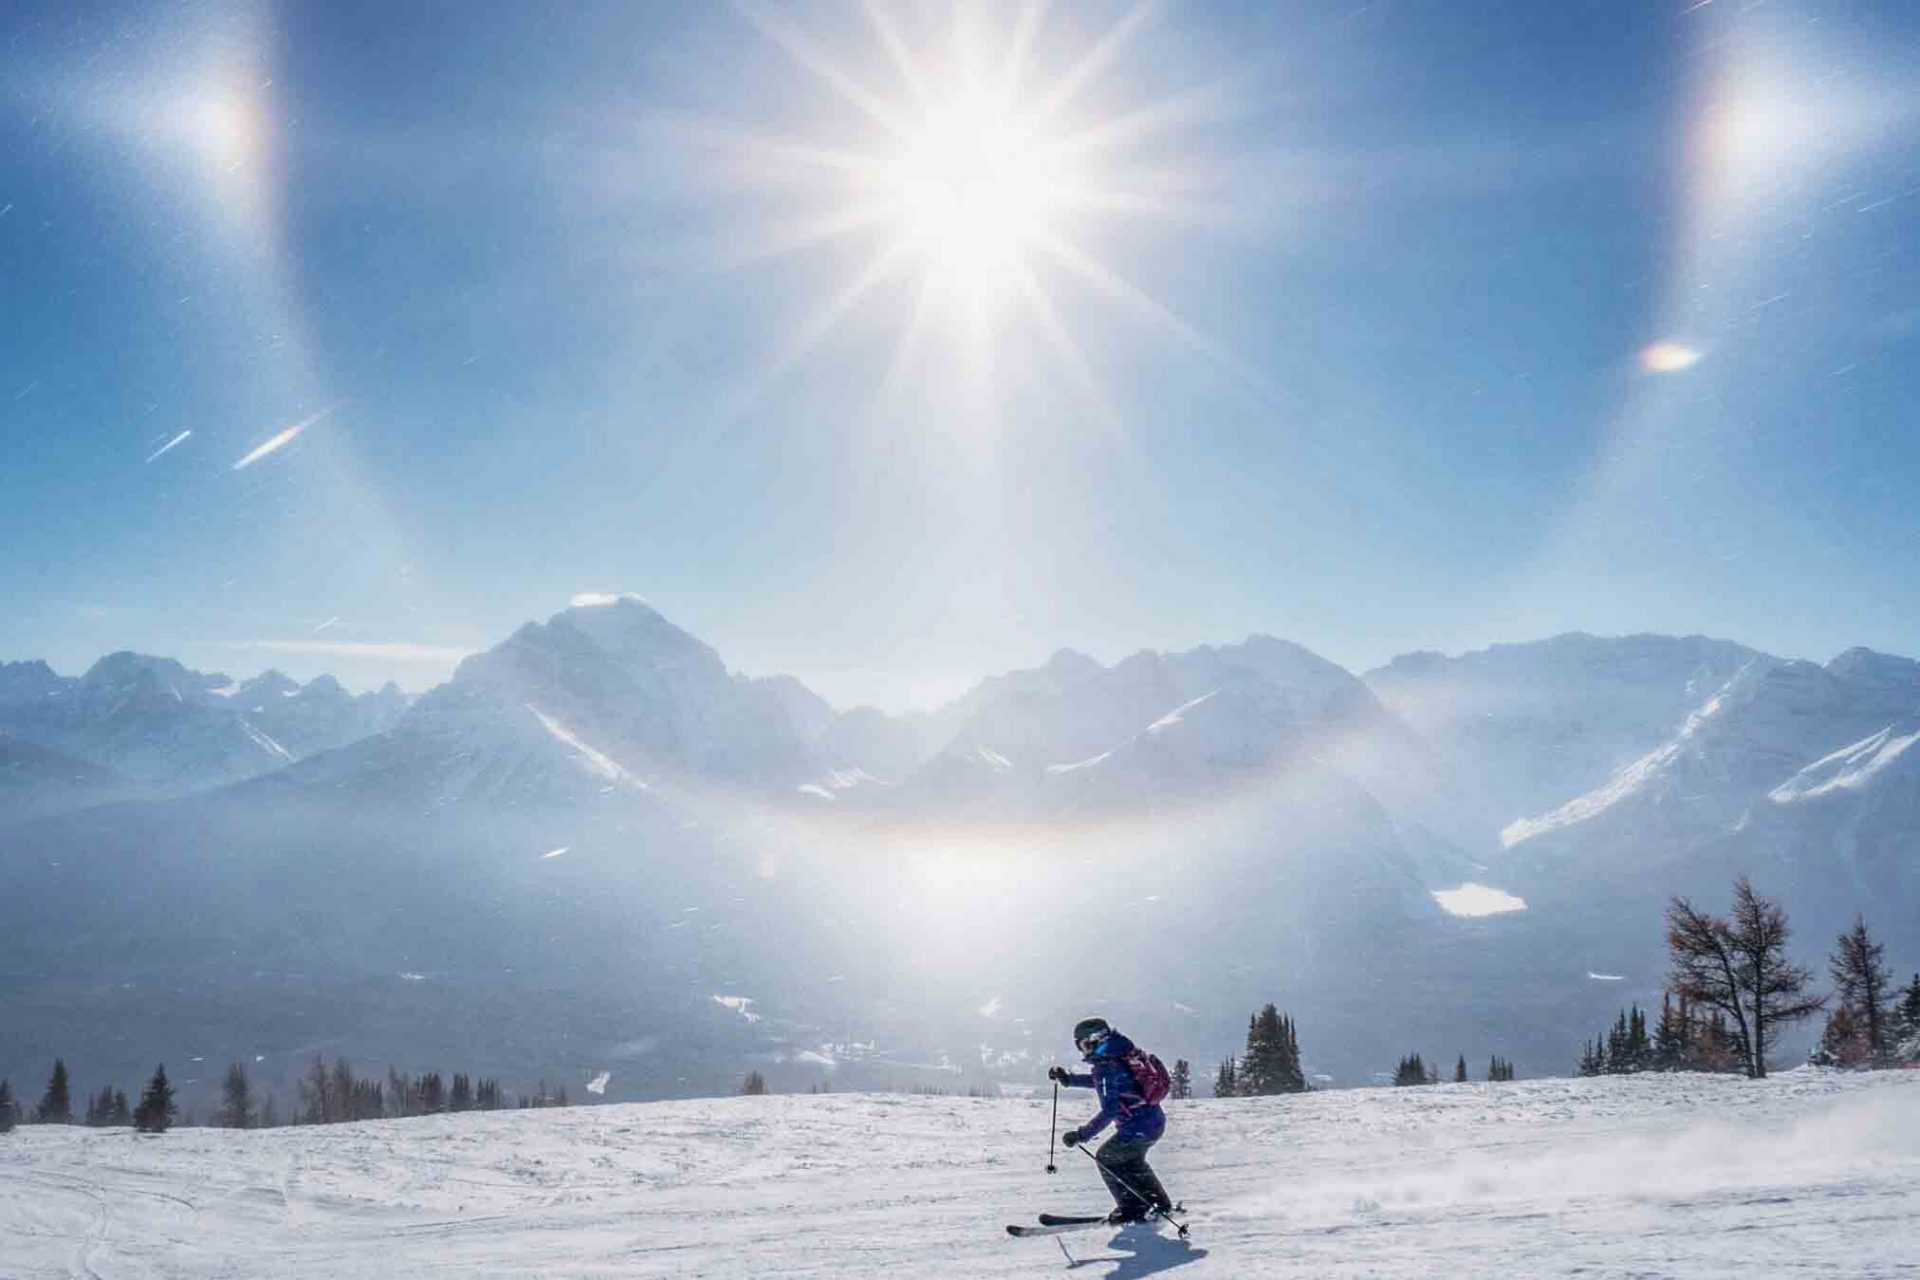 Sundog and mountain vistas at Lake Louise Ski Resort, Banff National Park.